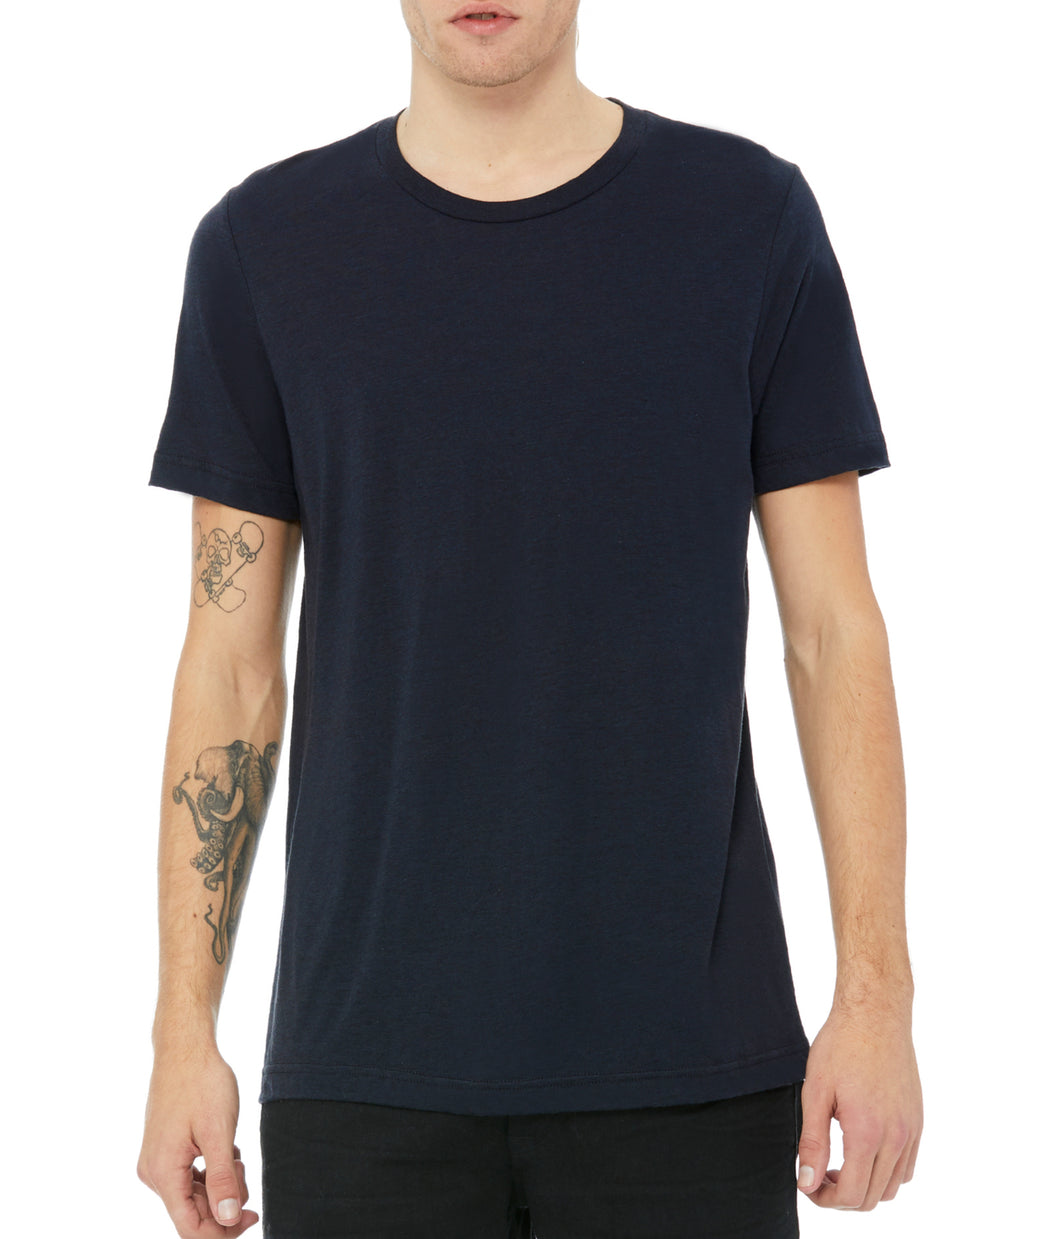 Men's Favorite Tee - Live the Give